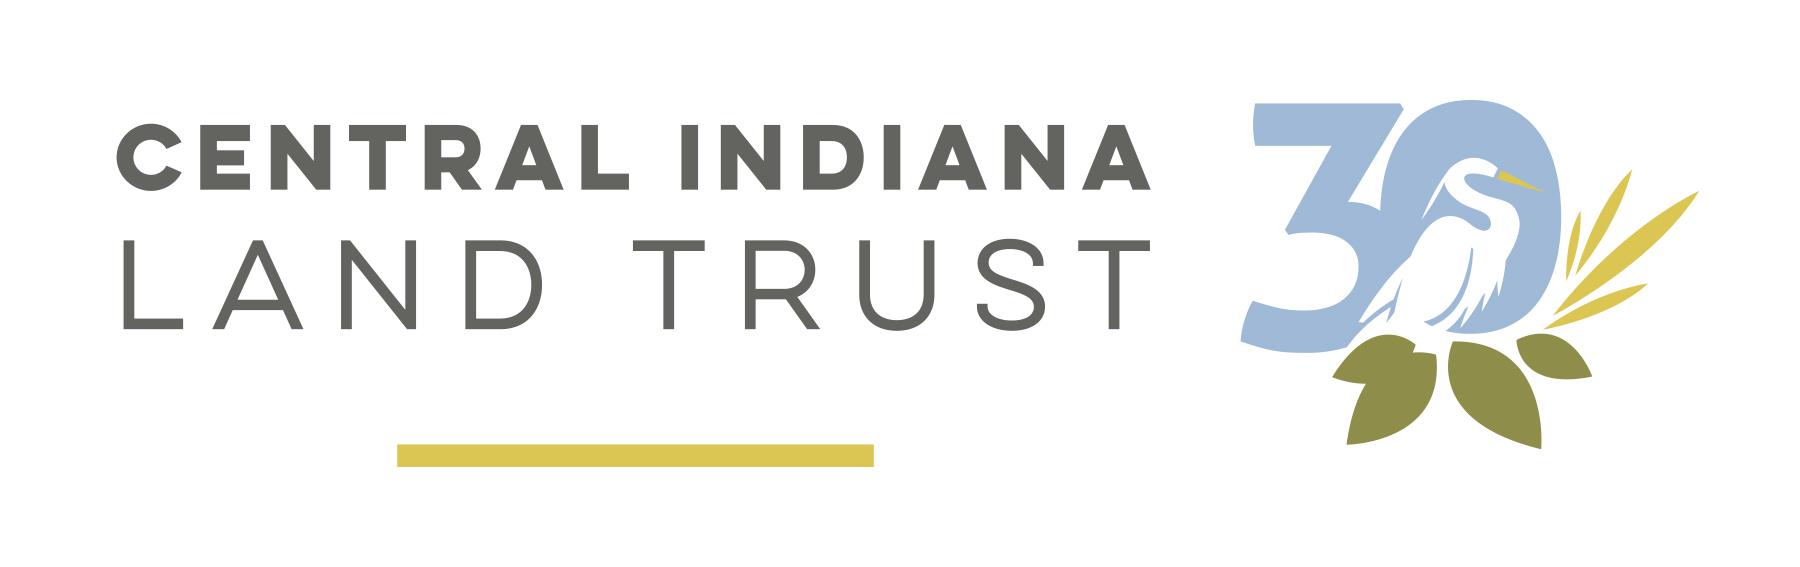 Central Indiana Land Trust